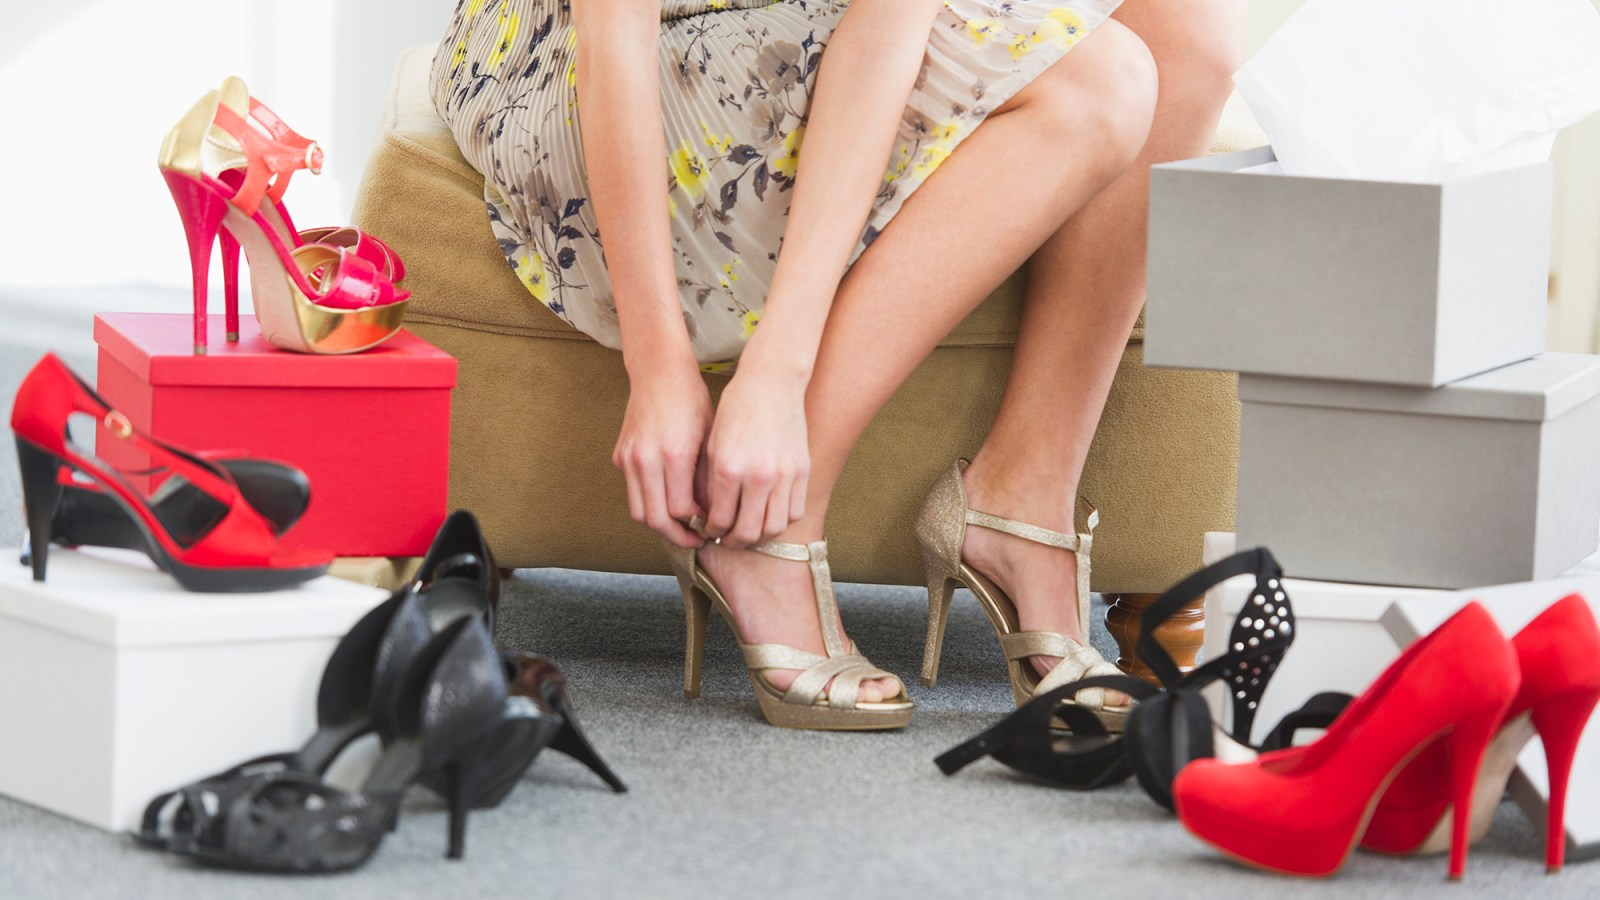 57c4fa9e6d The 5 Best Deals in the Amazing Stuart Weitzman Sale for Memorial Day. By  Suzy Forman. Woman Trying on Shoes